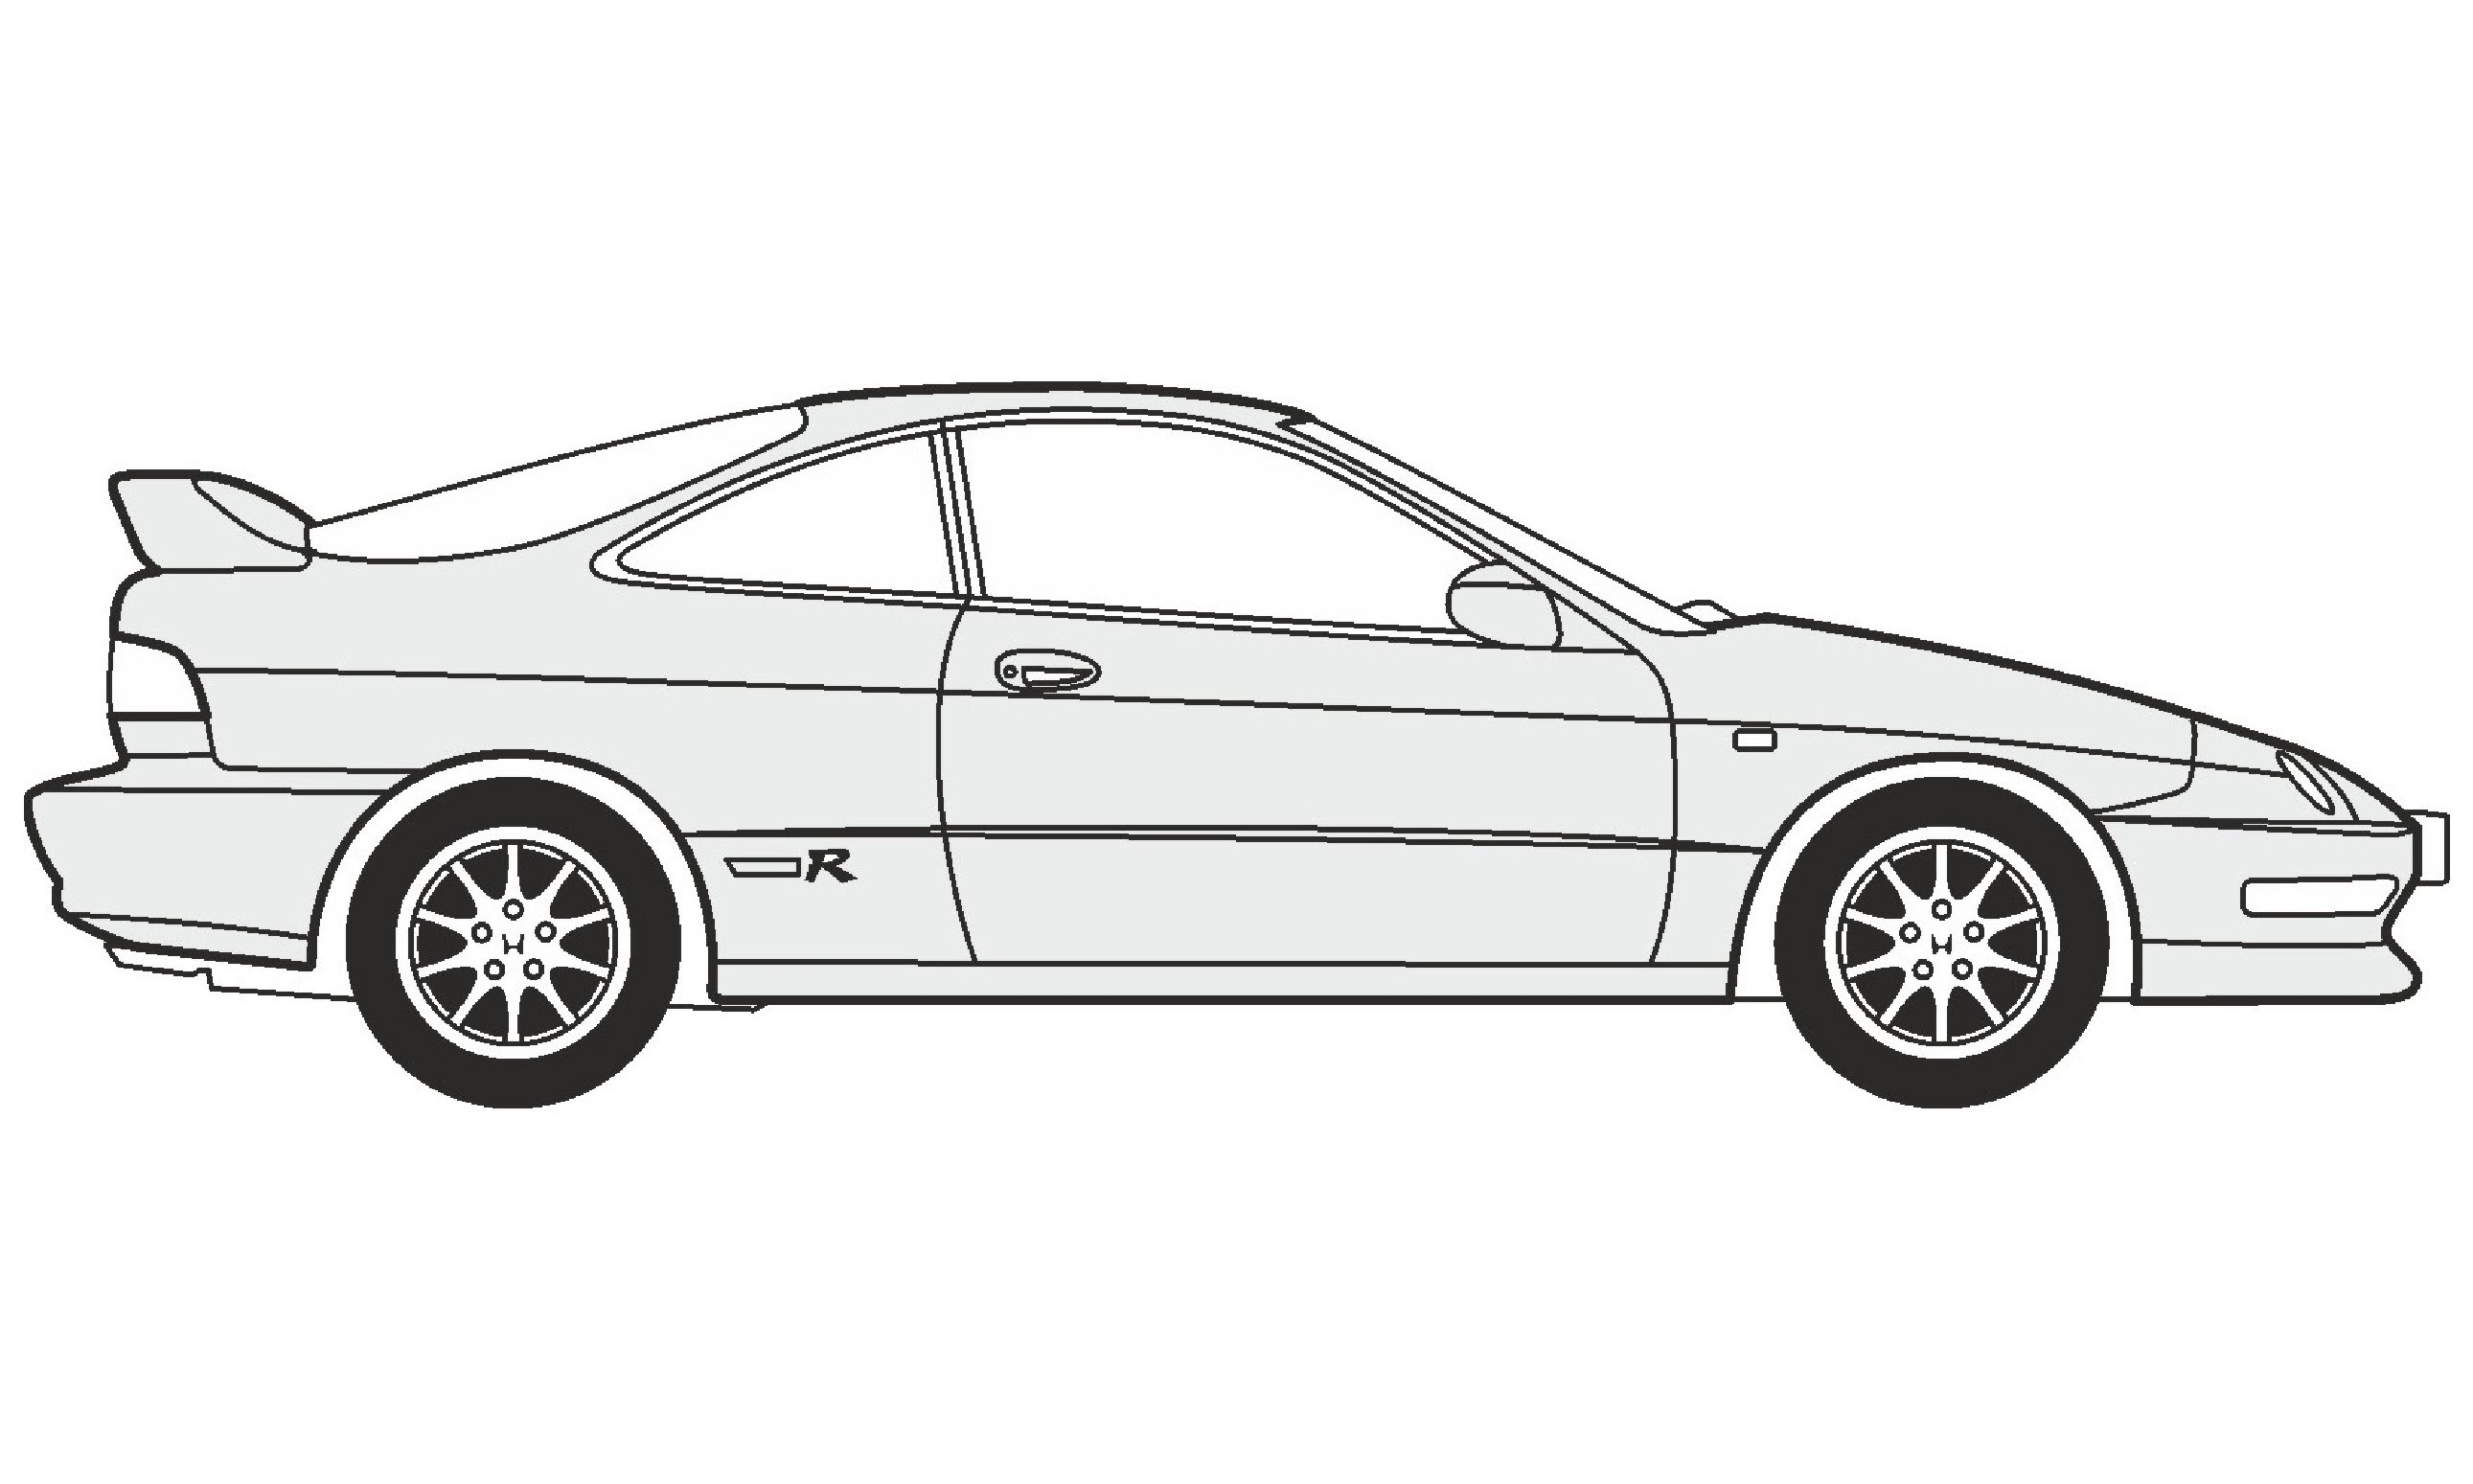 Acura Drawing Pencil Sketch Colorful Realistic Art